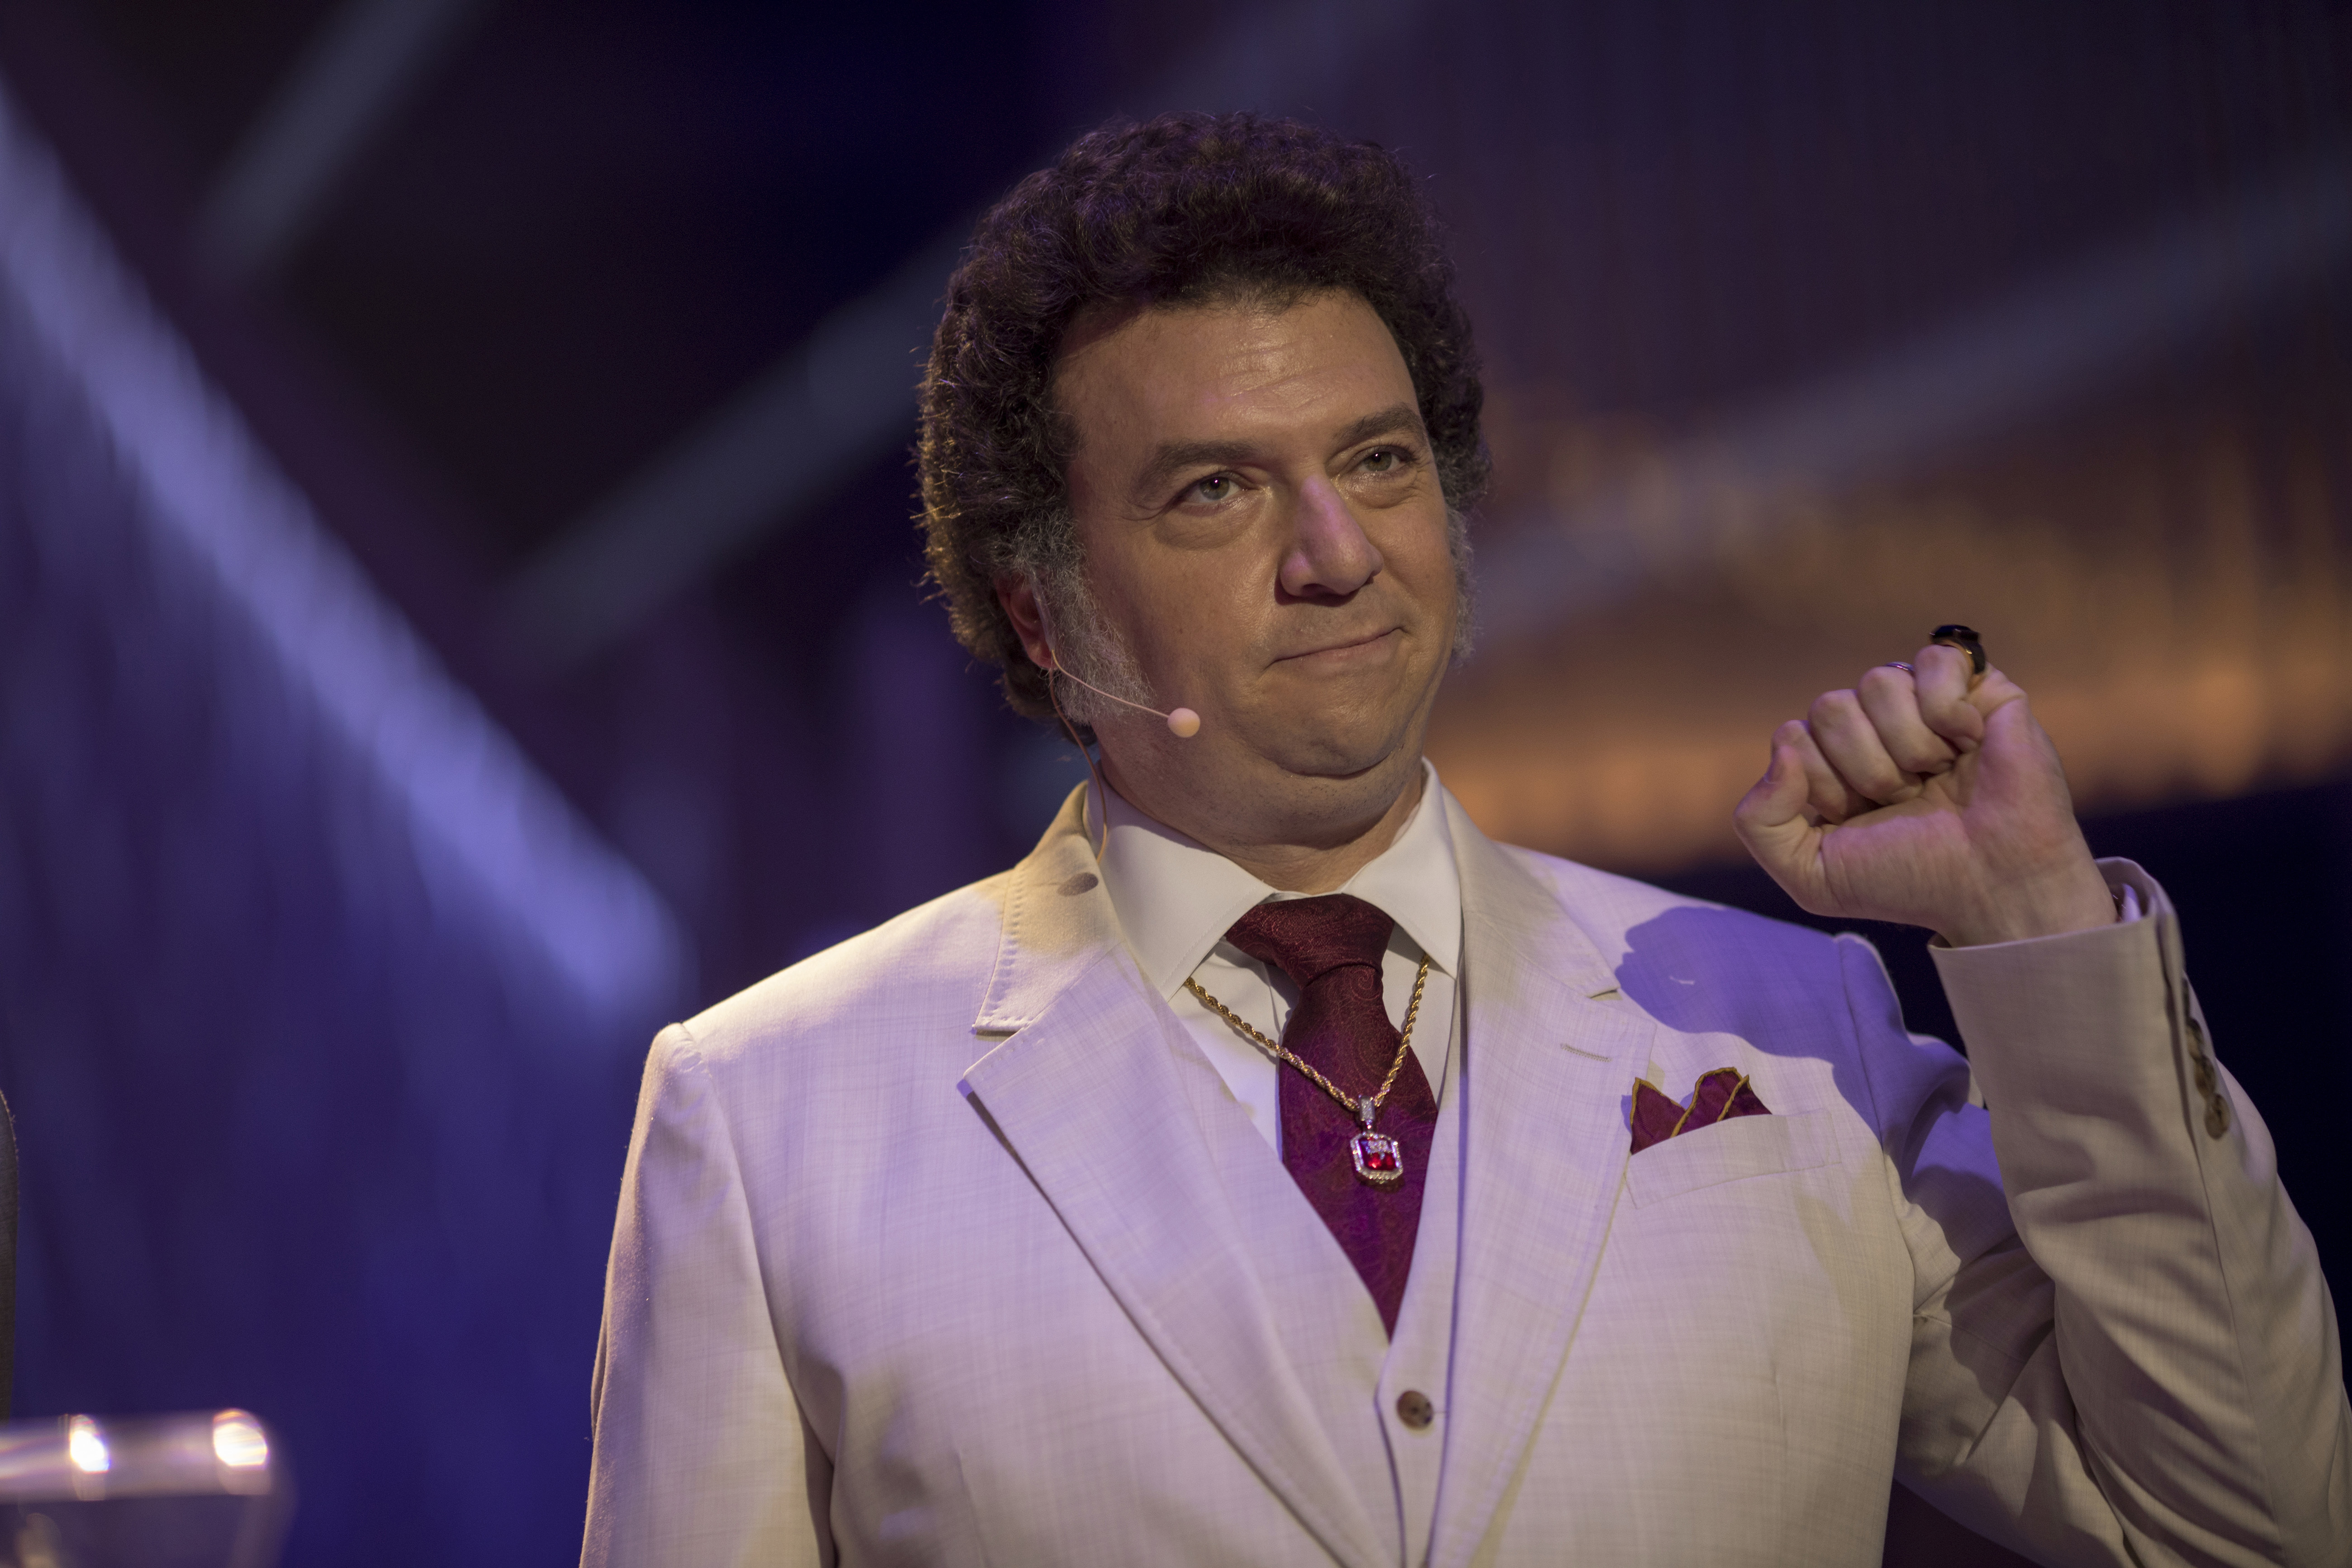 What HBO's The Righteous Gemstones gets right about evangelicals